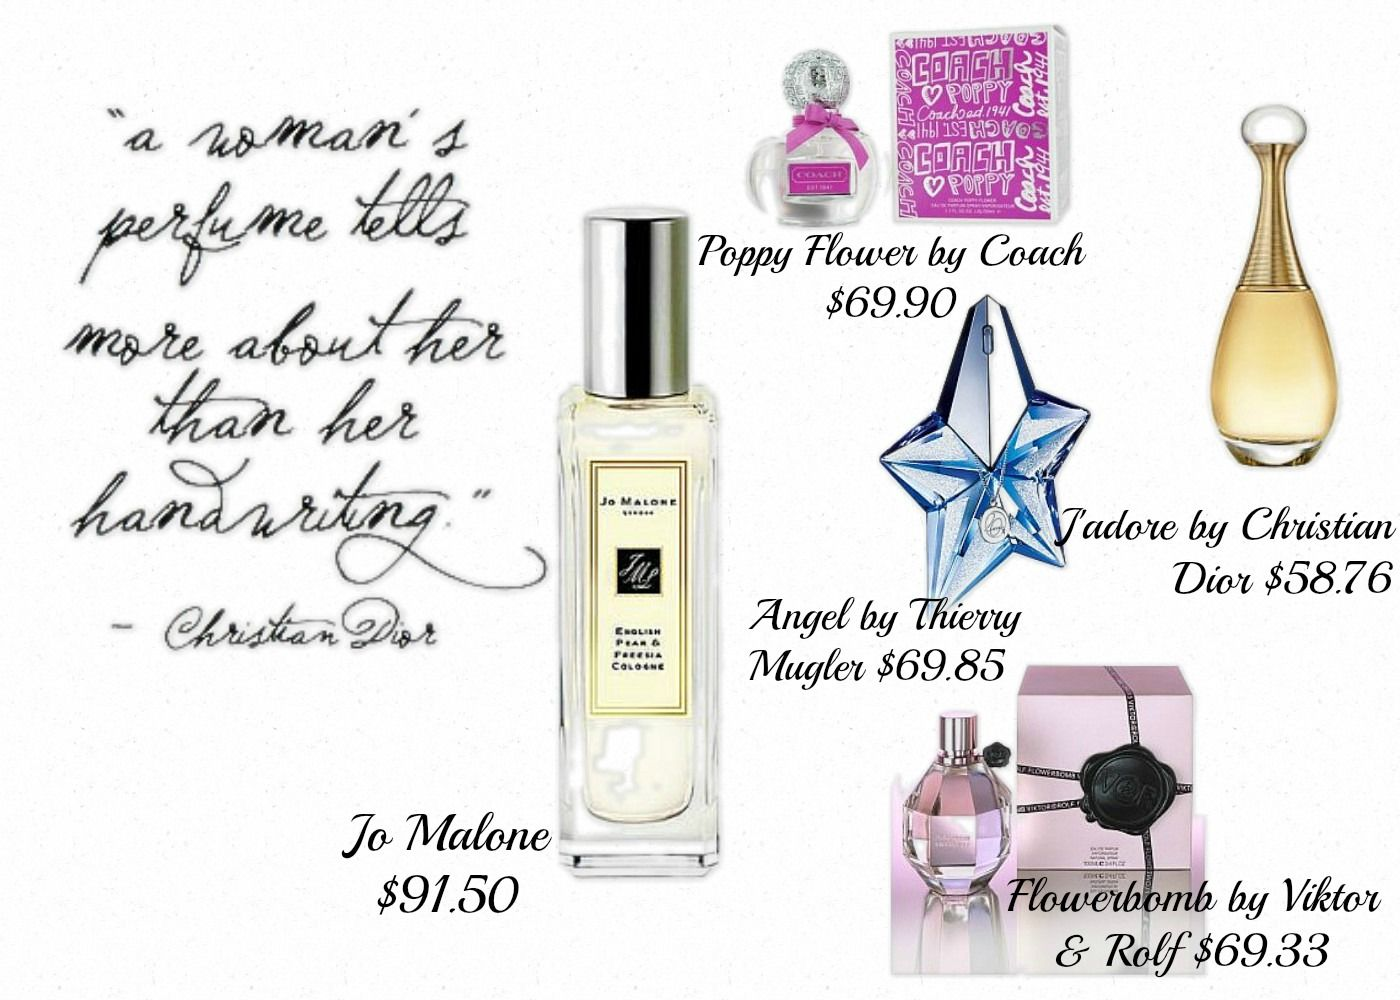 Top Women's Fragrances of 2013: I think I may have found a few fav for Spring !